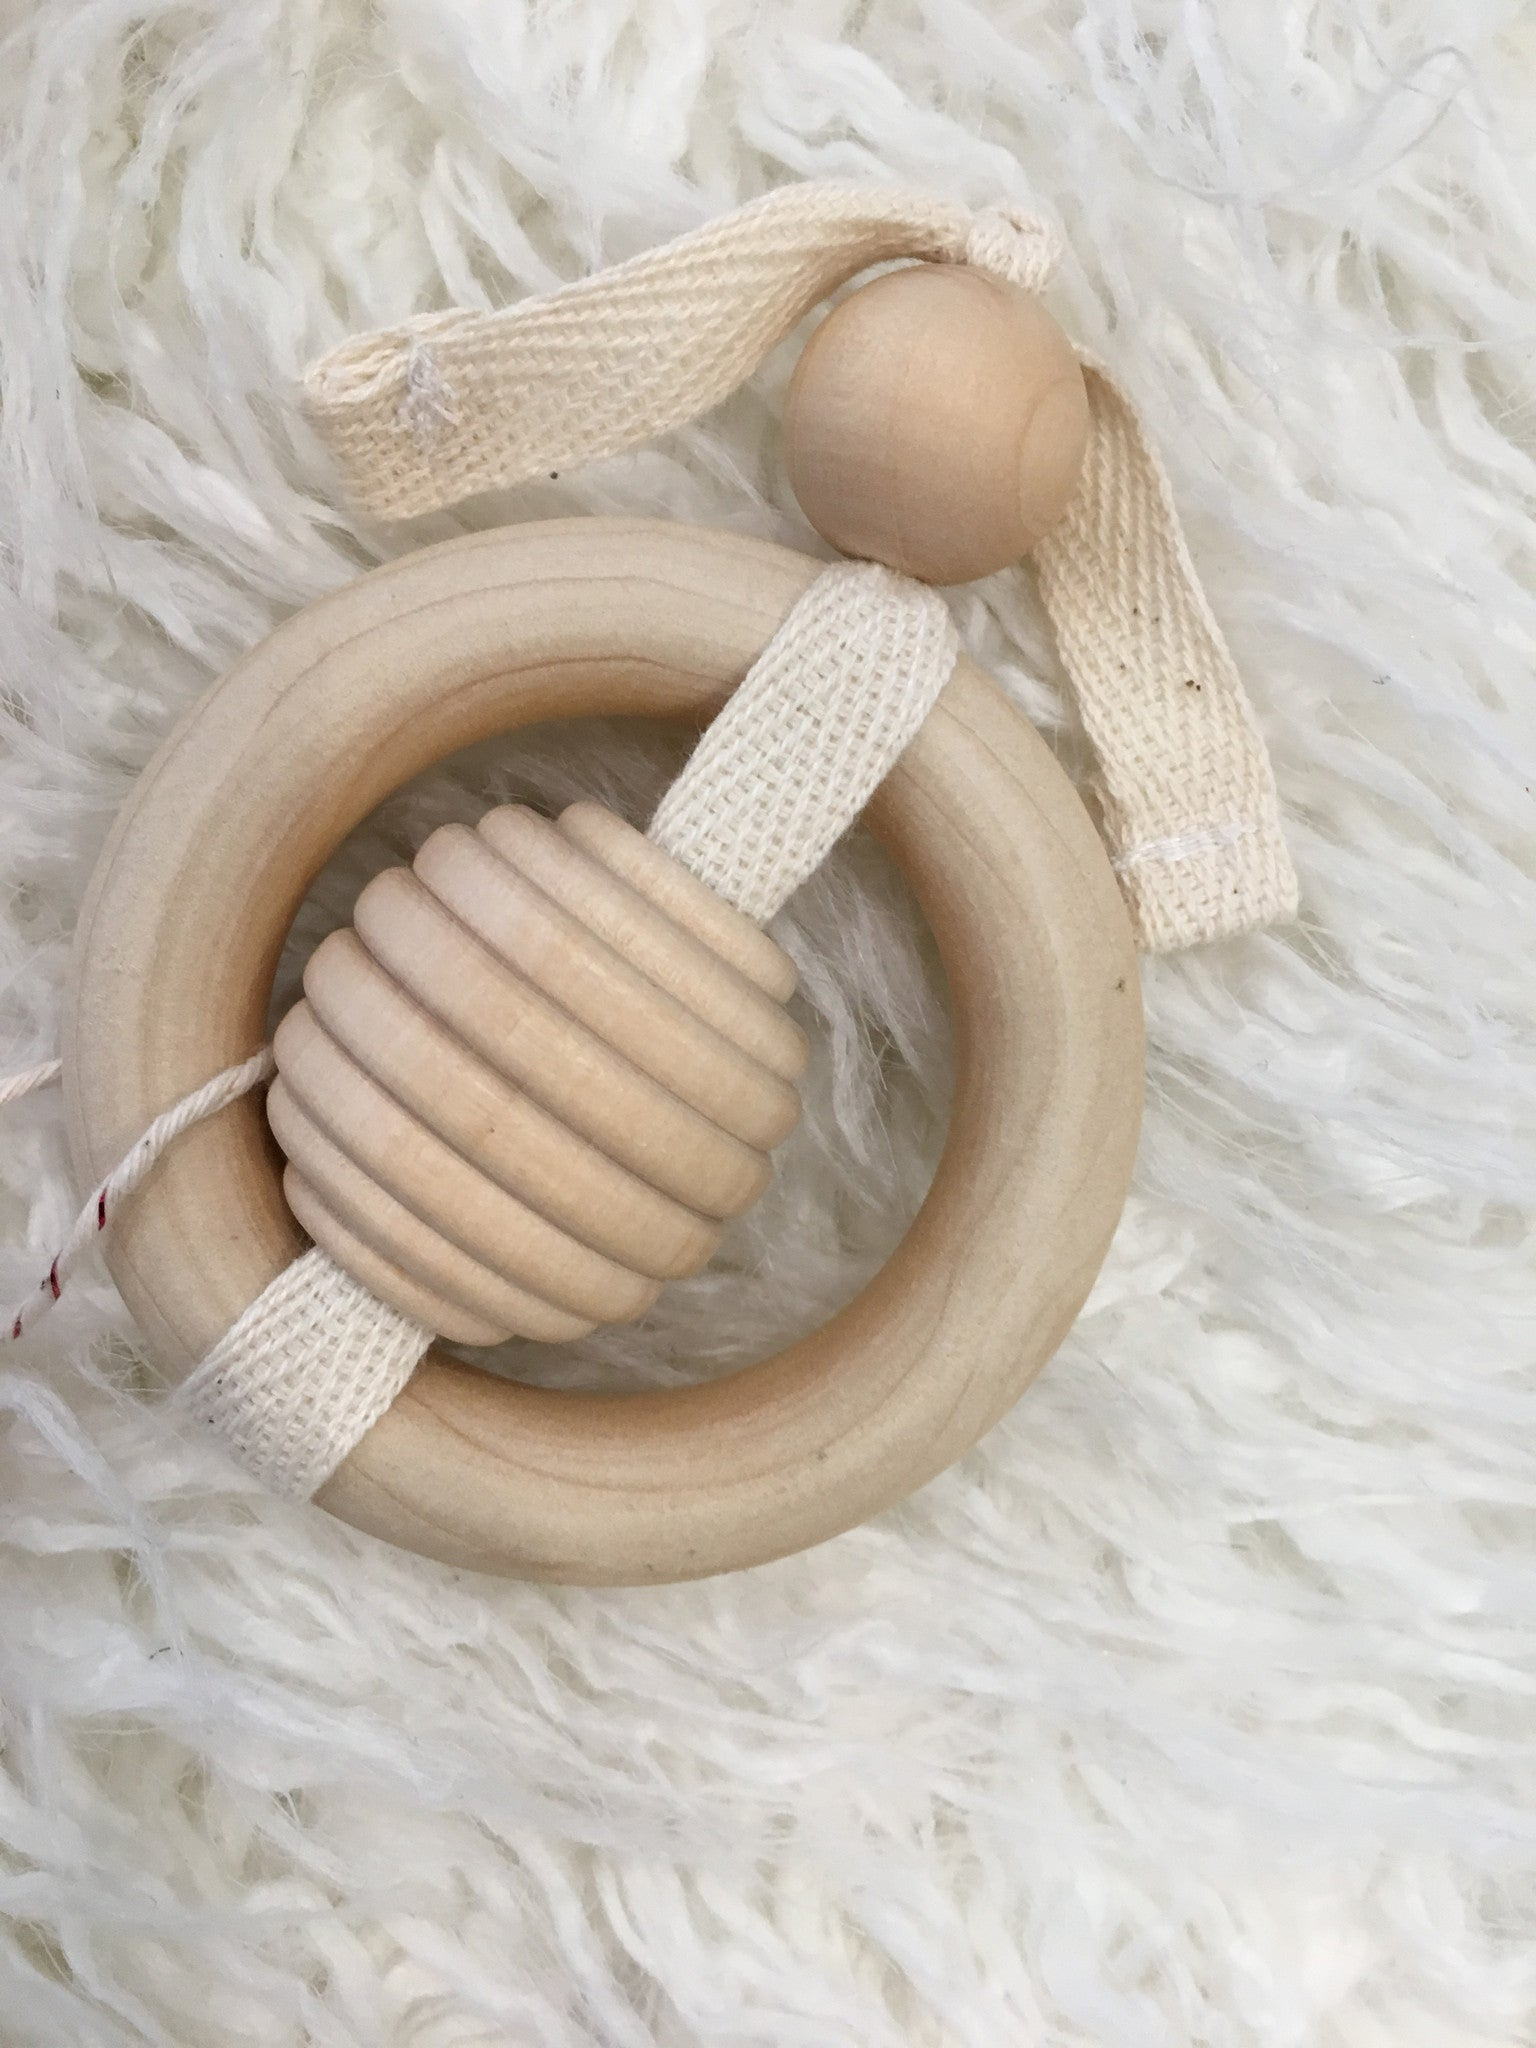 Wooden rattle/teether